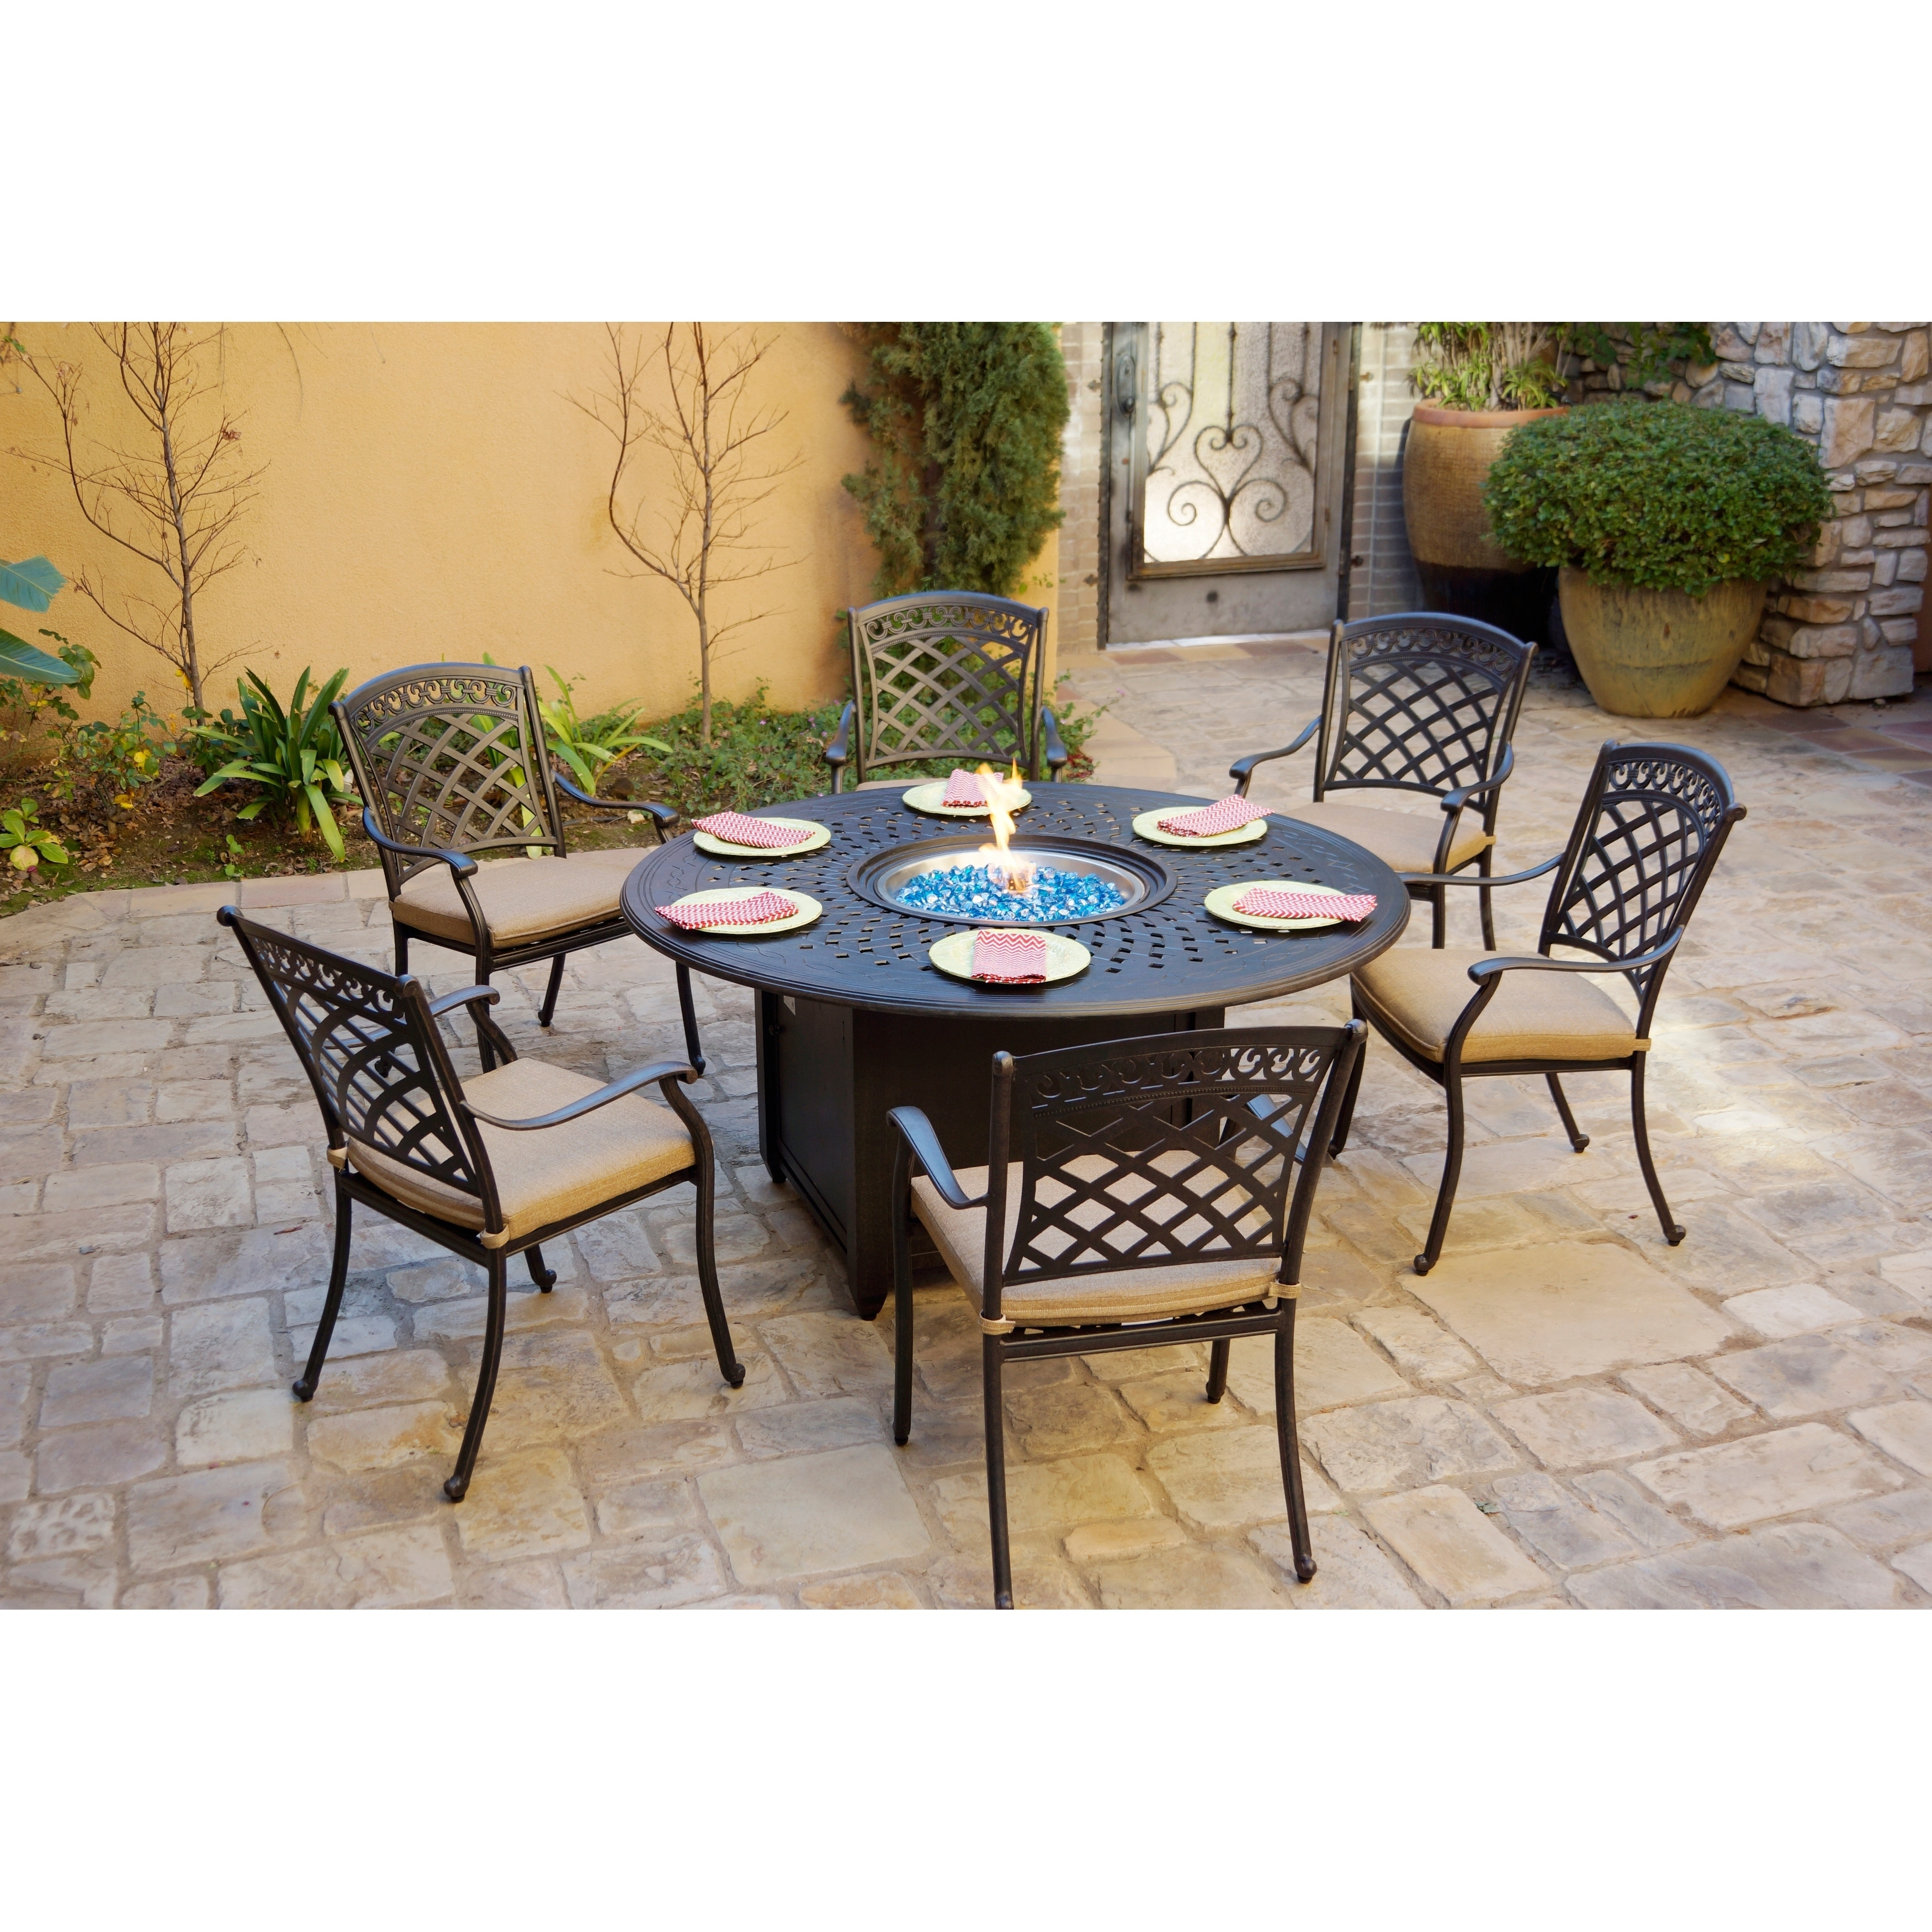 7 Piece Patio Fire Pit Dining Set 60 Inch Round Propane Table With Firegl